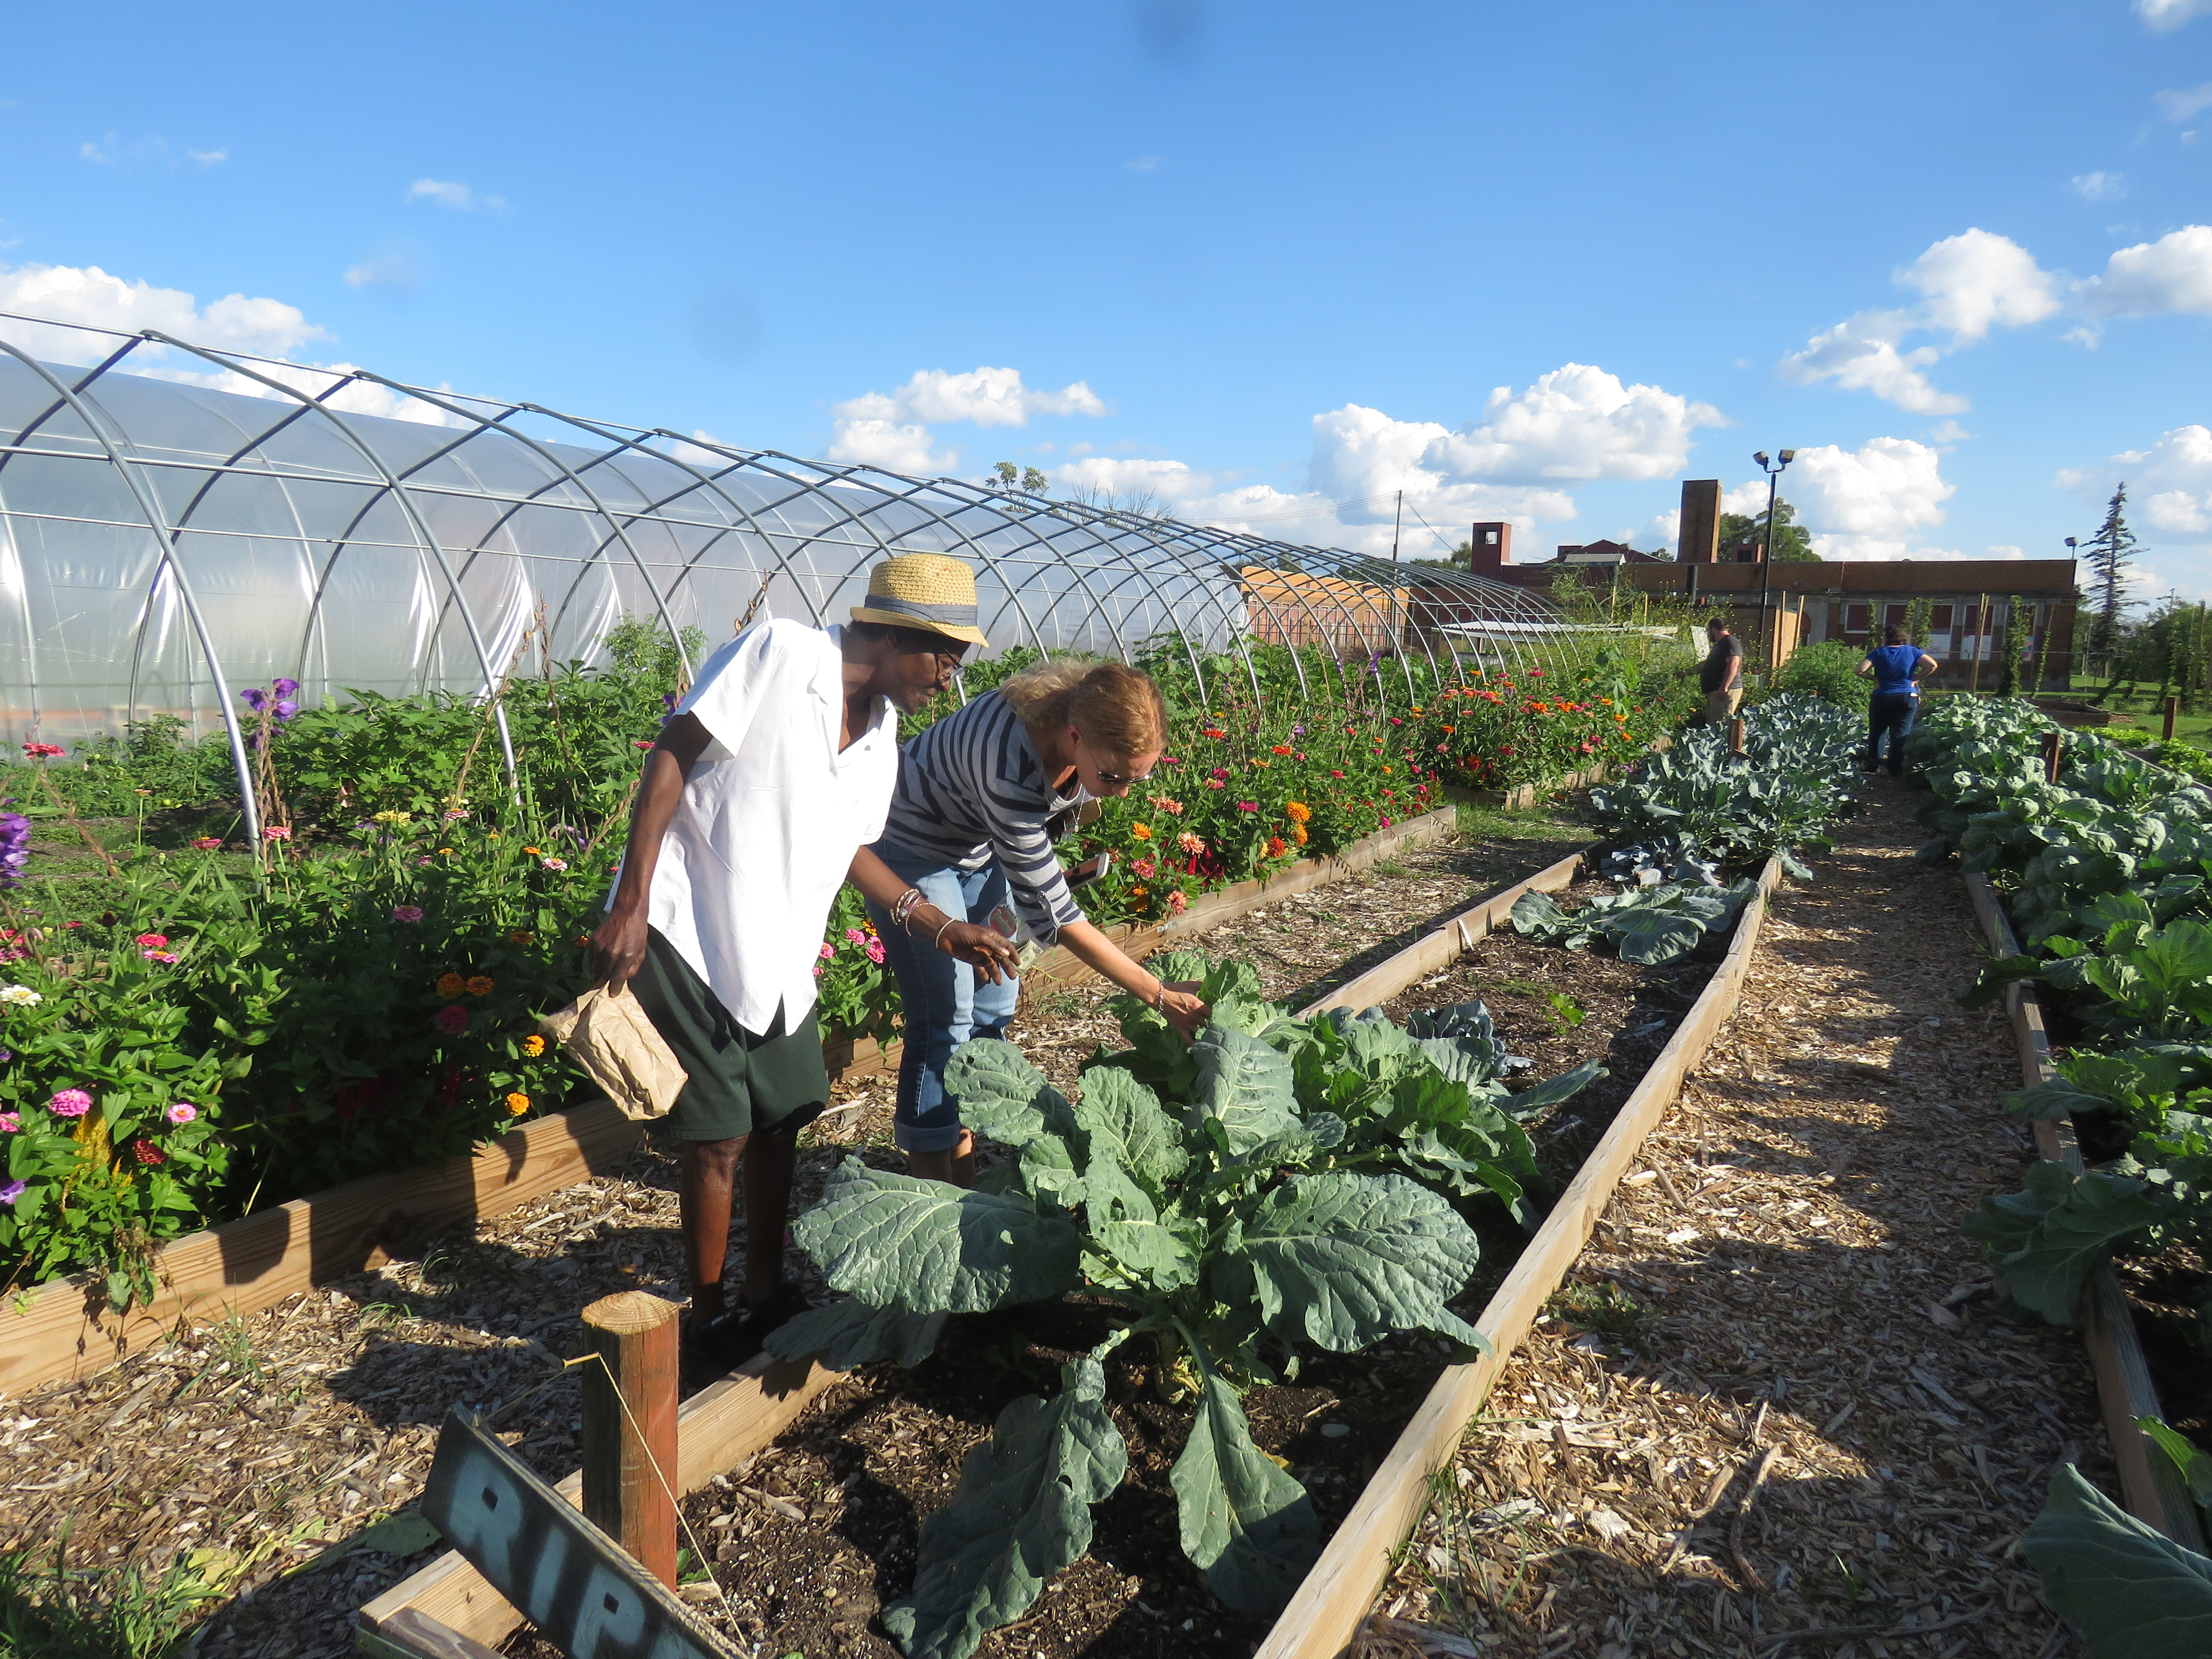 A man and woman stop and look at a cabbage plant in a community garden. The sky above is blue with puffy clouds.